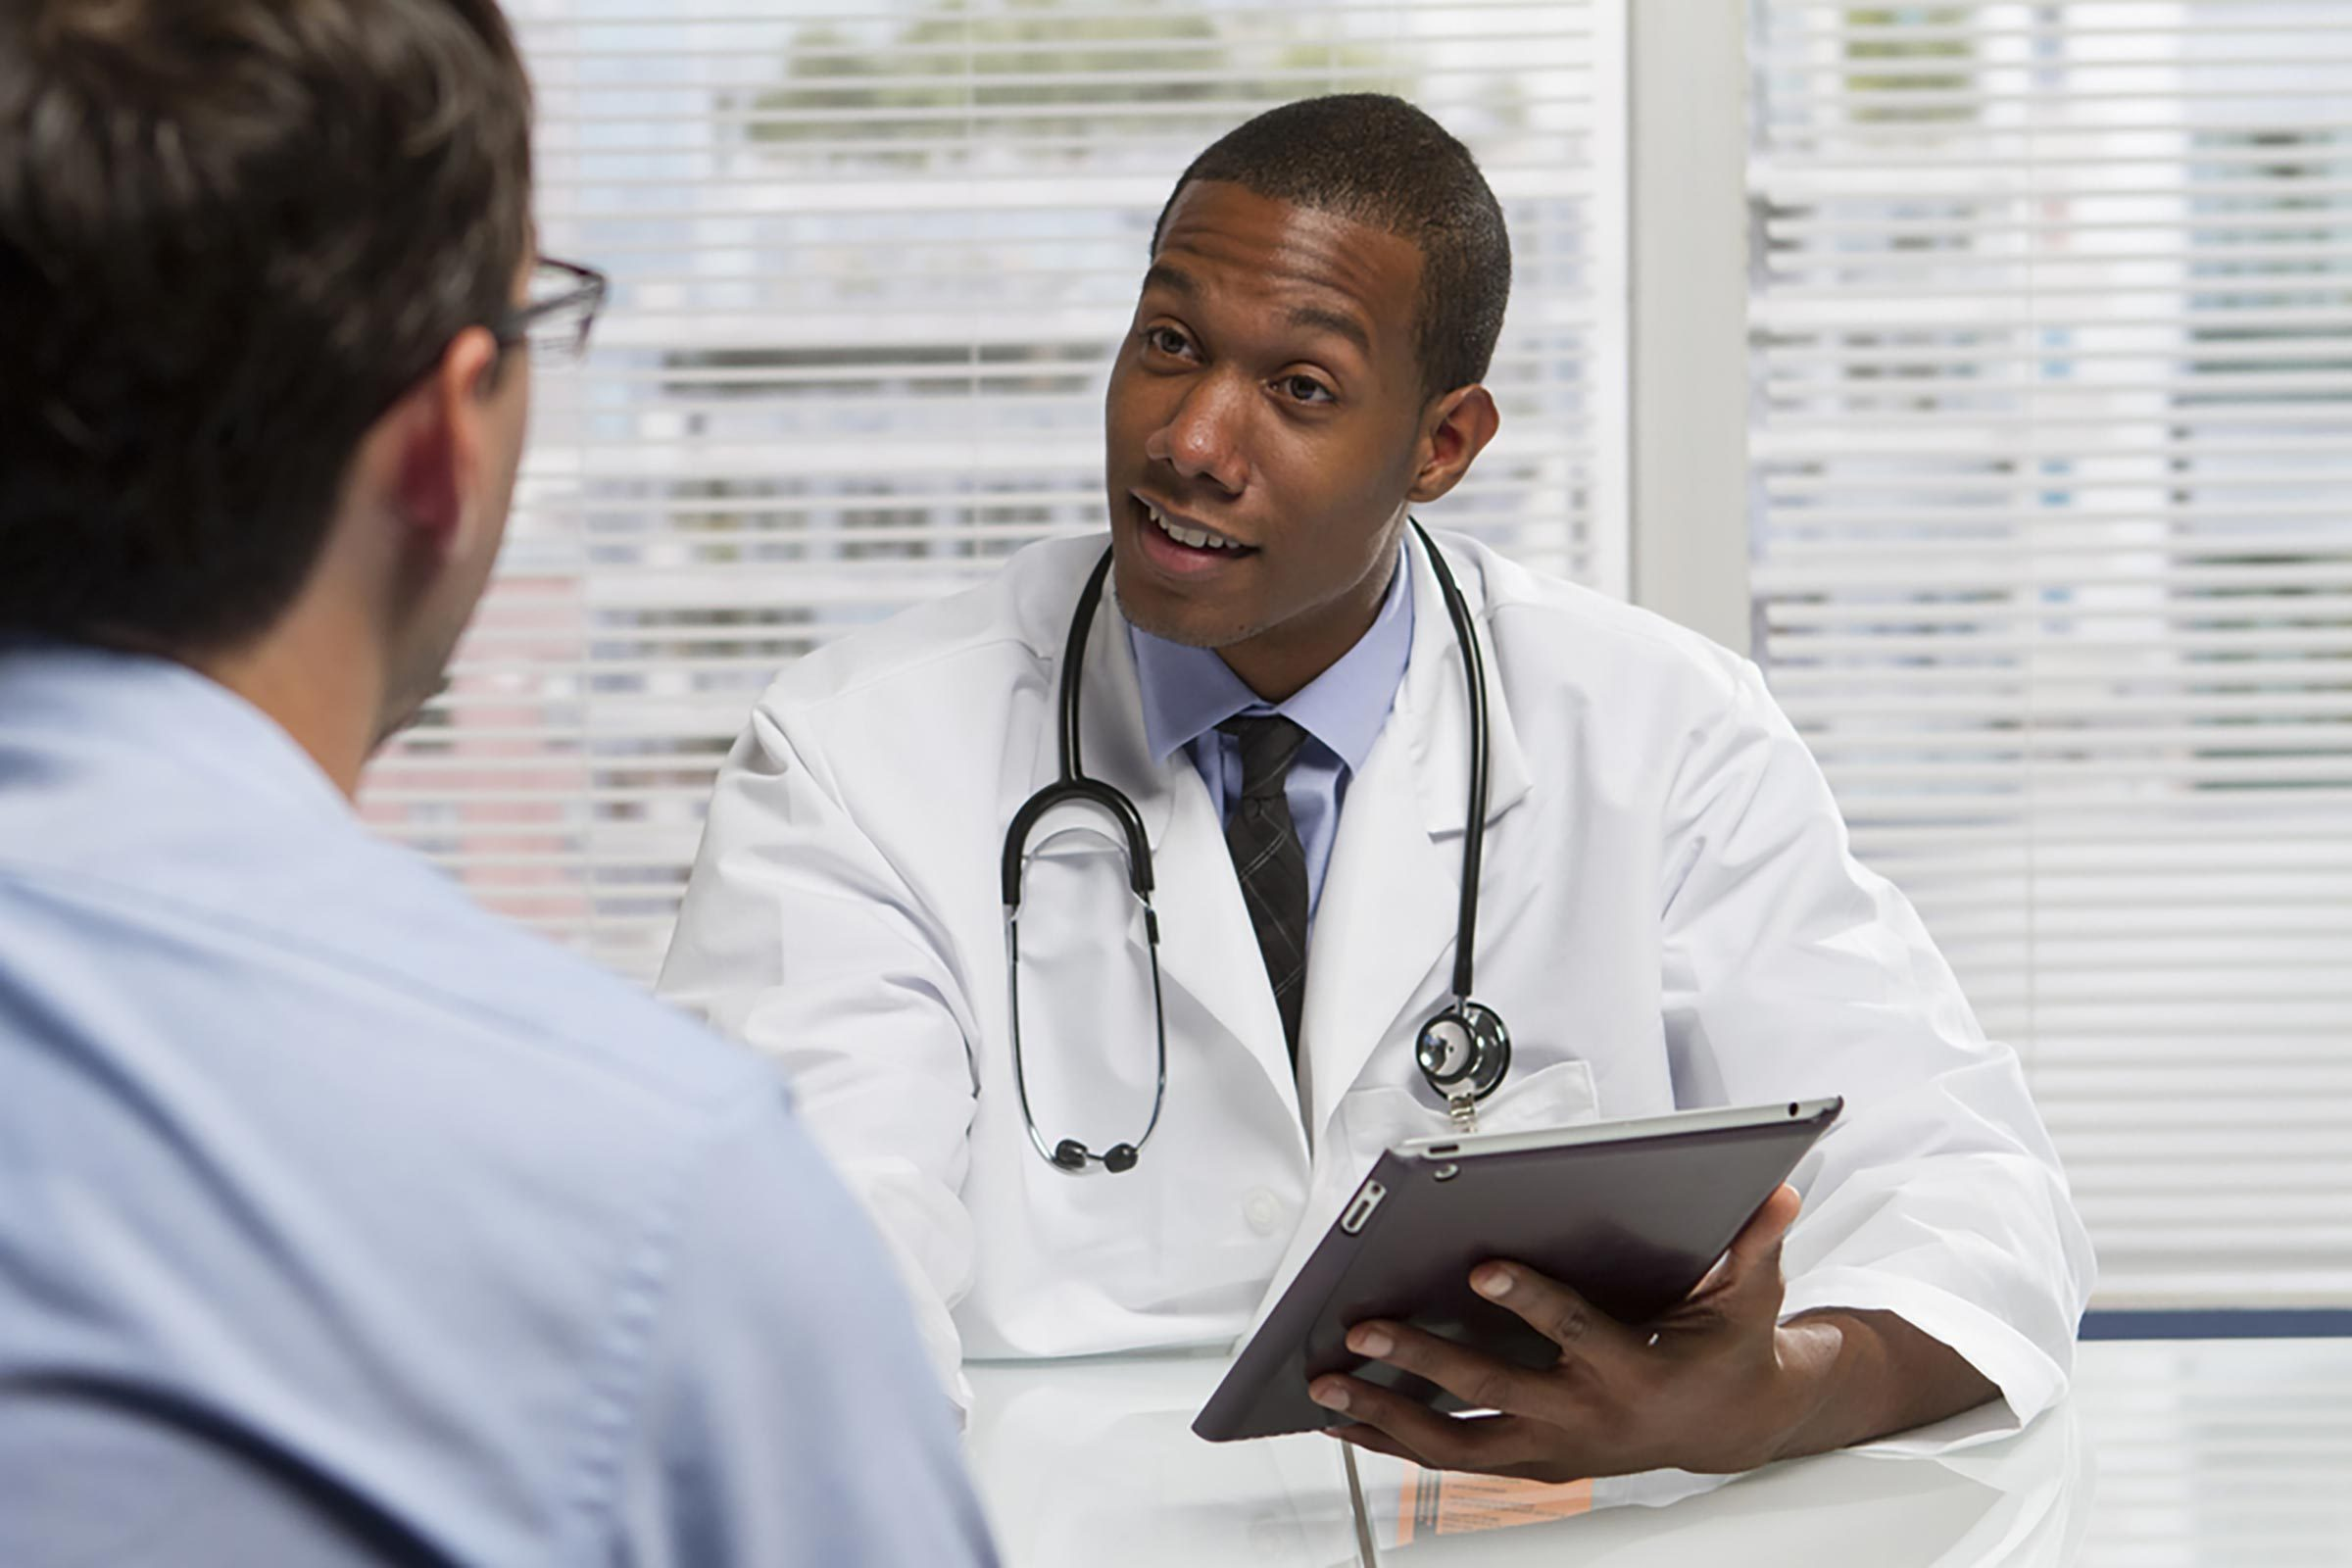 African-American doctor with a stethoscope and clipboard shaking hands with a patient